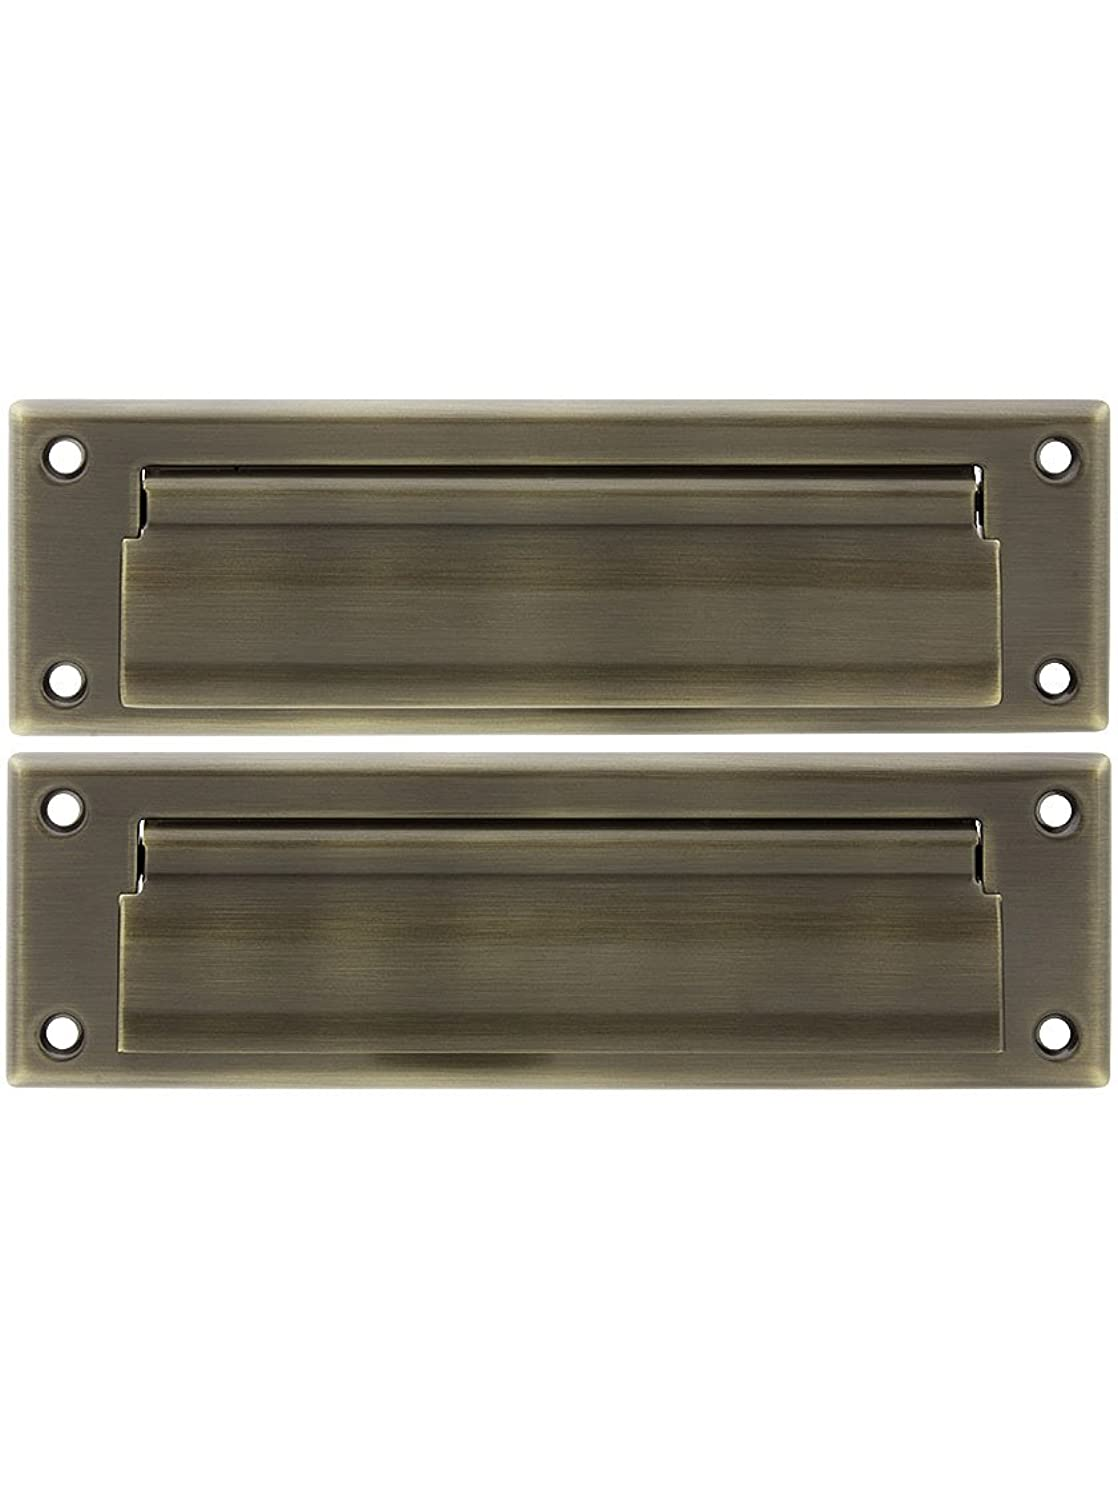 Solid Brass Medium Letter Size Mail Slot with Closed Back Plate in Antique Brass.